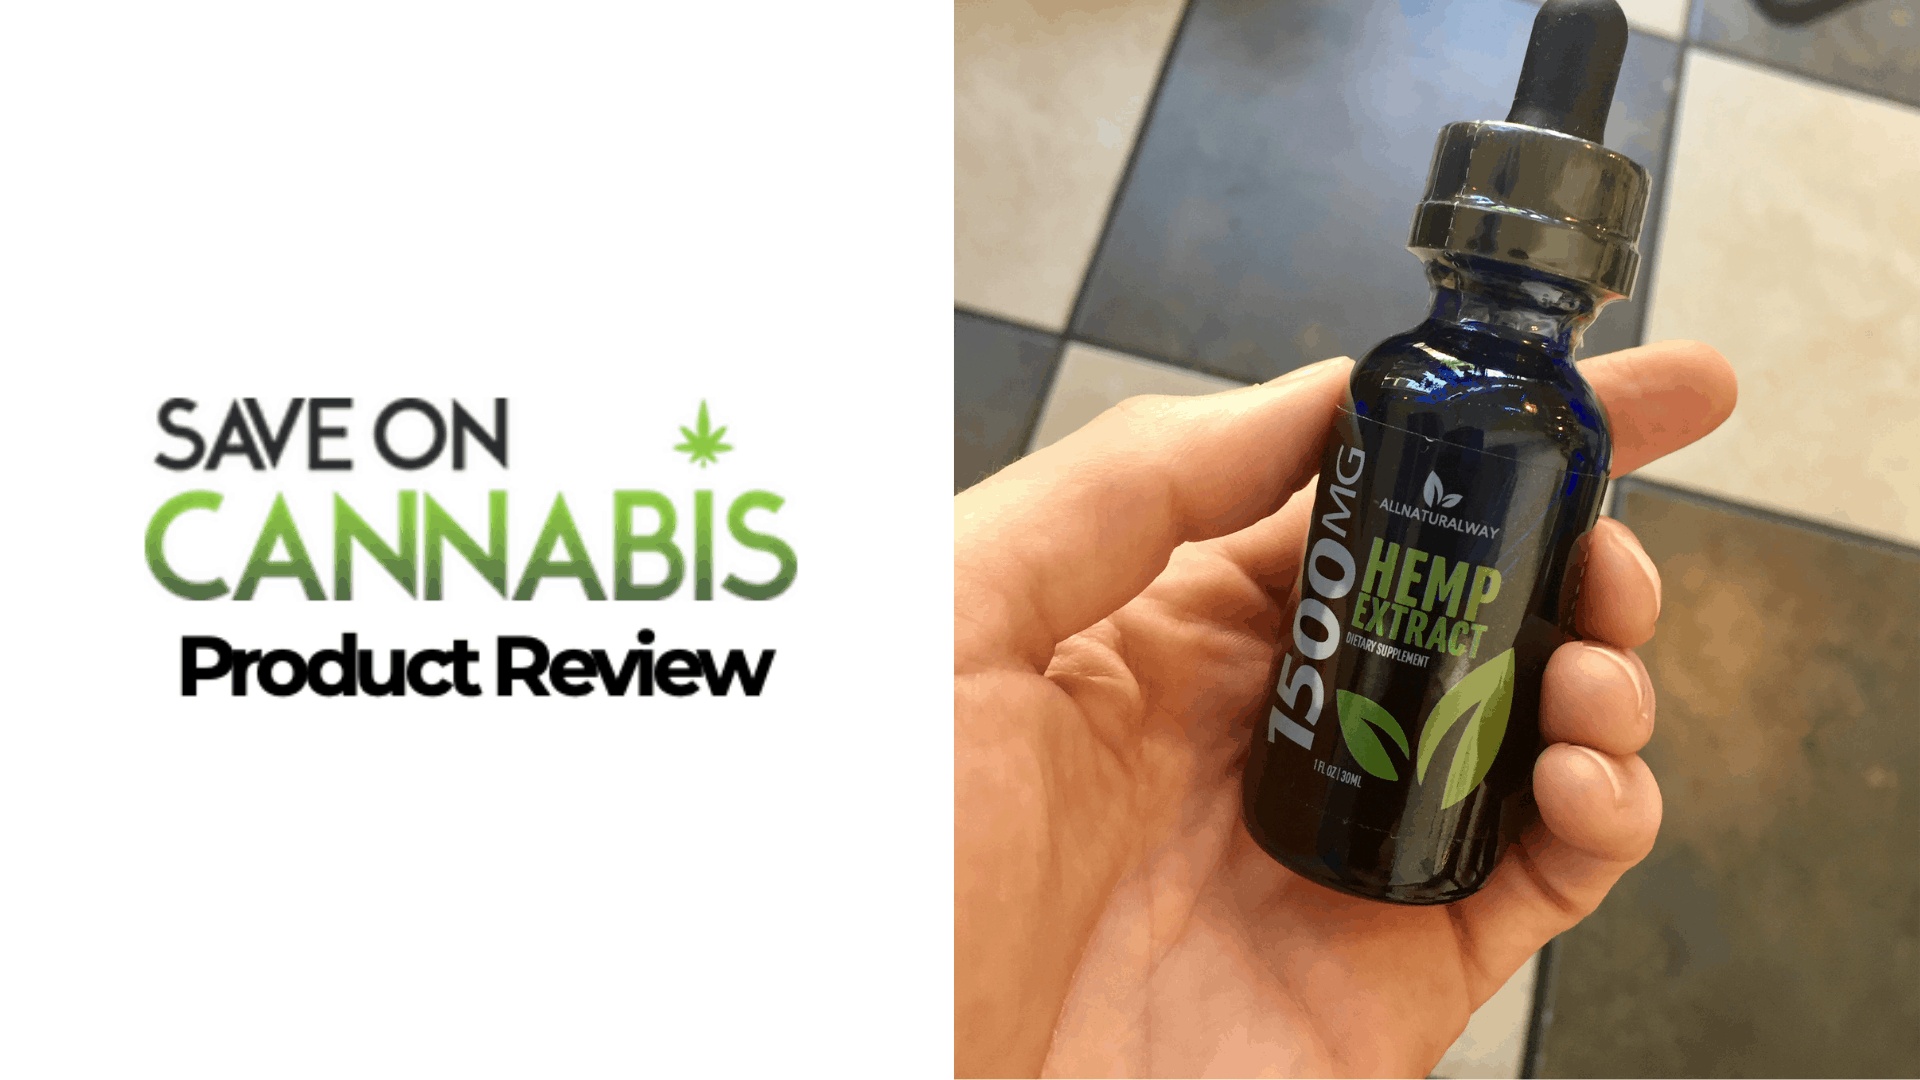 all natural way cbd oil 1500 mg SAVE ON CANNABIS Website